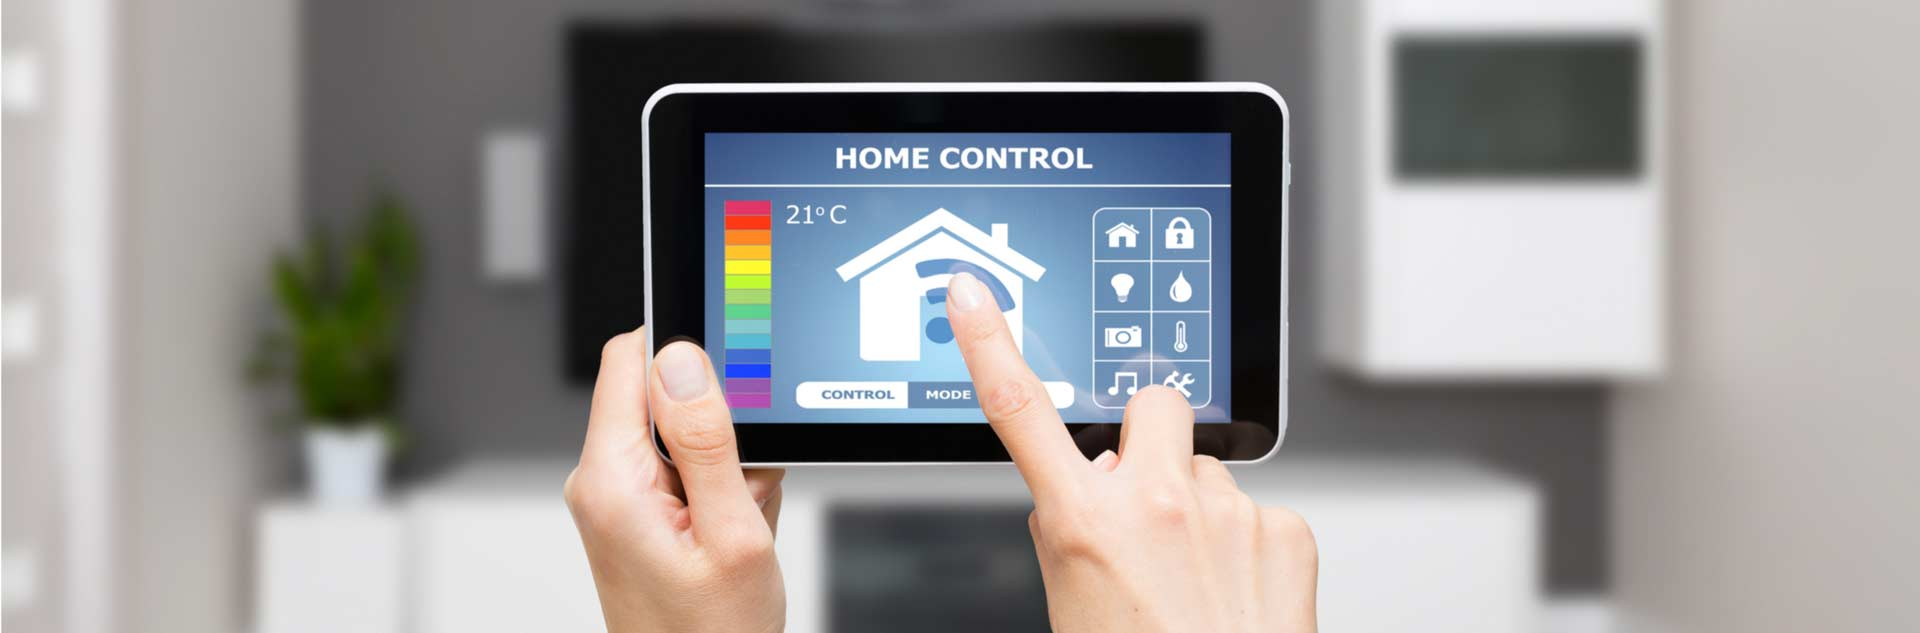 implementing smart home technology into a rental property